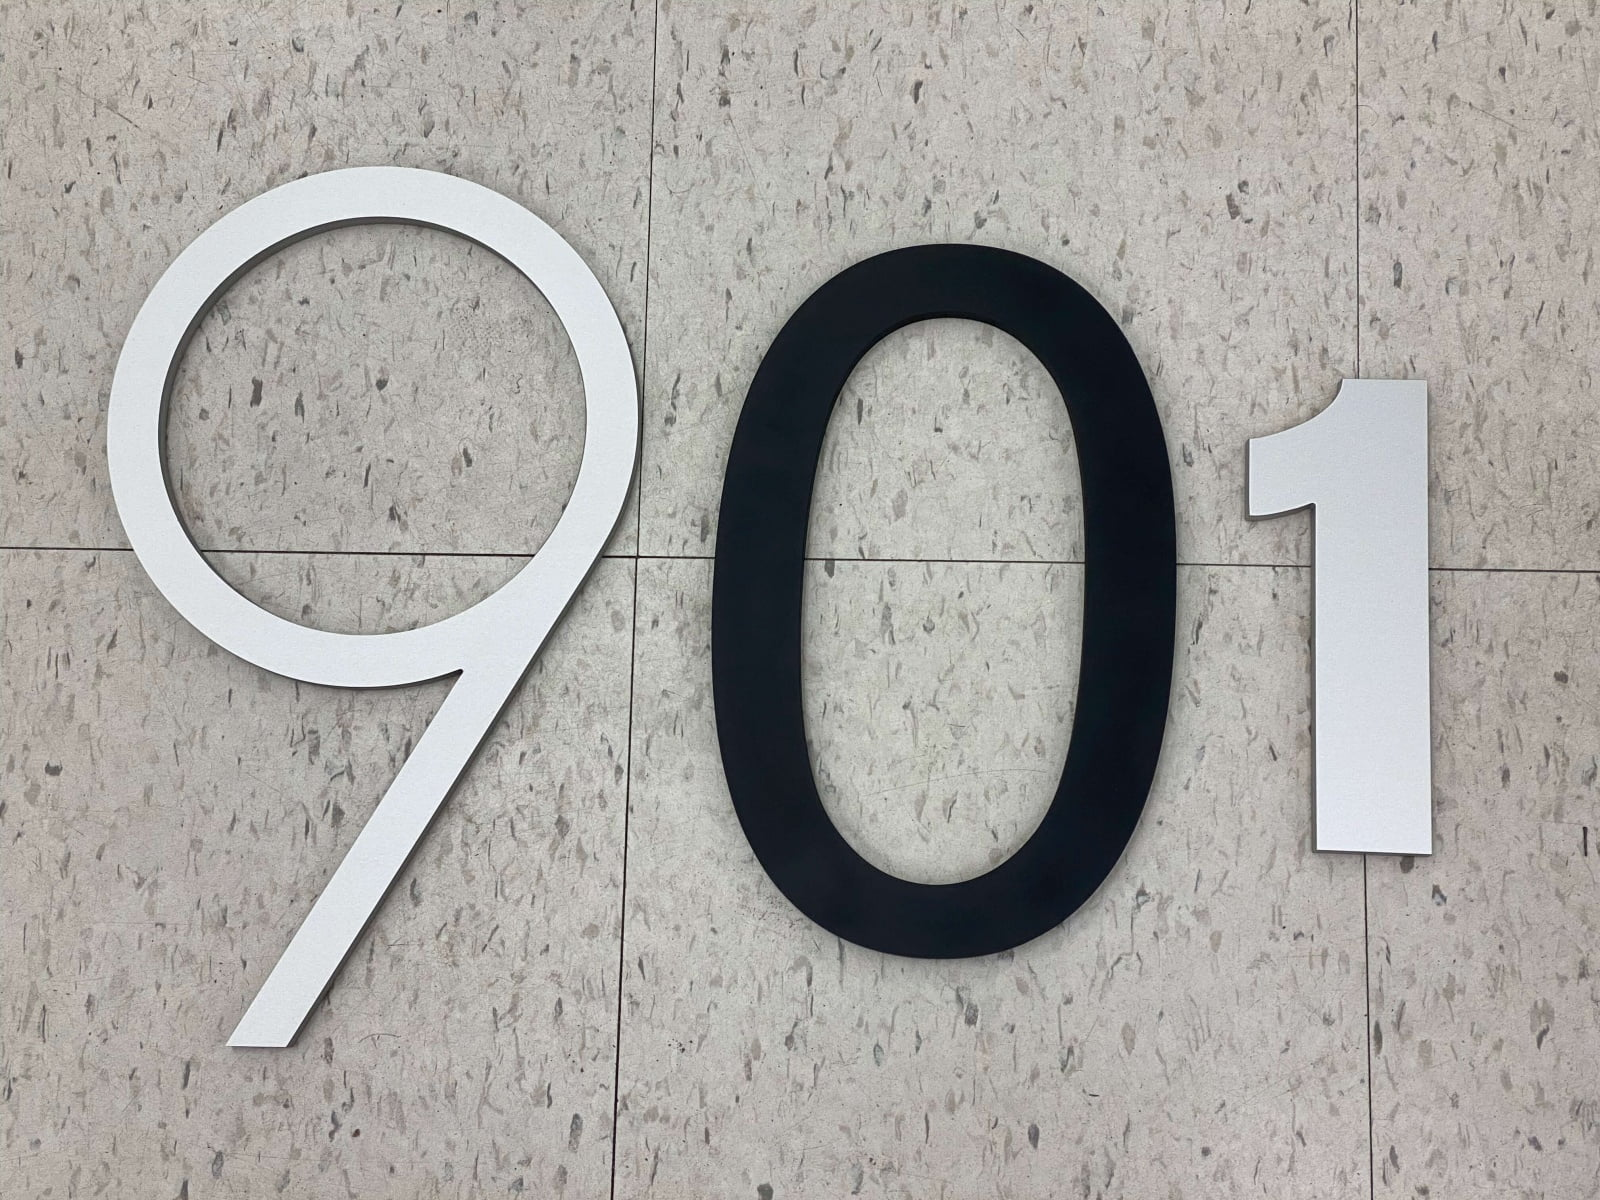 Vivid House Number | Residential House Number | Number 901 | Brushed Aluminum and Black Finish |